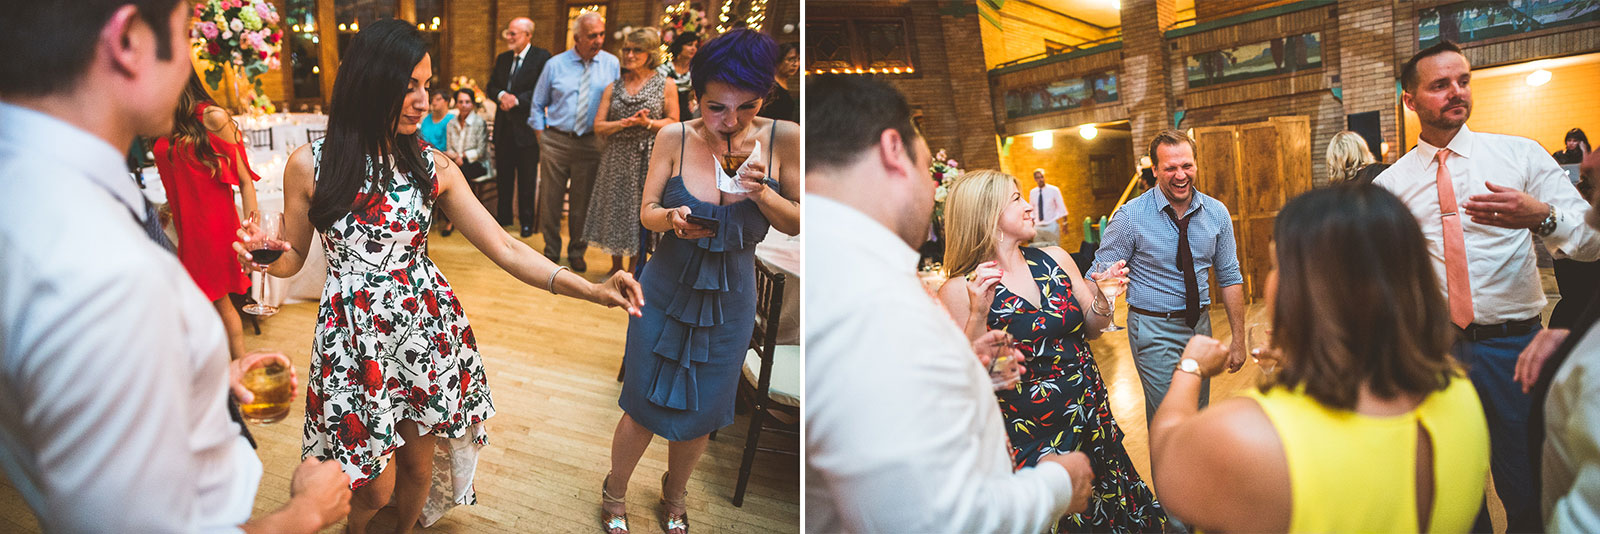 77 cute - Natalie + Alan // Chicago Wedding Photographer at Cafe Brauer